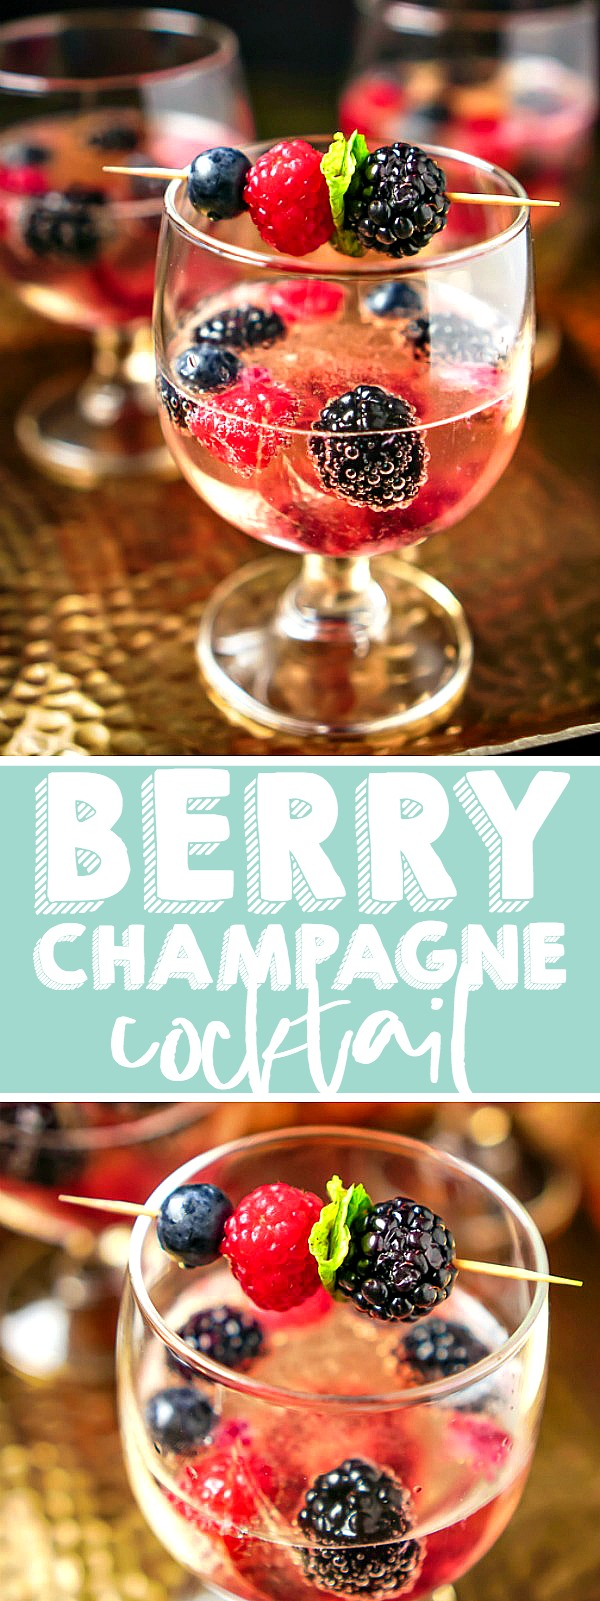 Sparkling Berry Champagne Cocktail is a gorgeous and tasty holiday cocktail recipe everyone will love! A perfect sparkling wine drink recipe for New Year's, Valentine's Day, Bridal Showers and more with easy make ahead three berry syrup! | THE LOVE NERDS #proseccococktail #sparklingcocktail #newyearseverecipe #valentinesdayrecipe #bridalshowercocktail